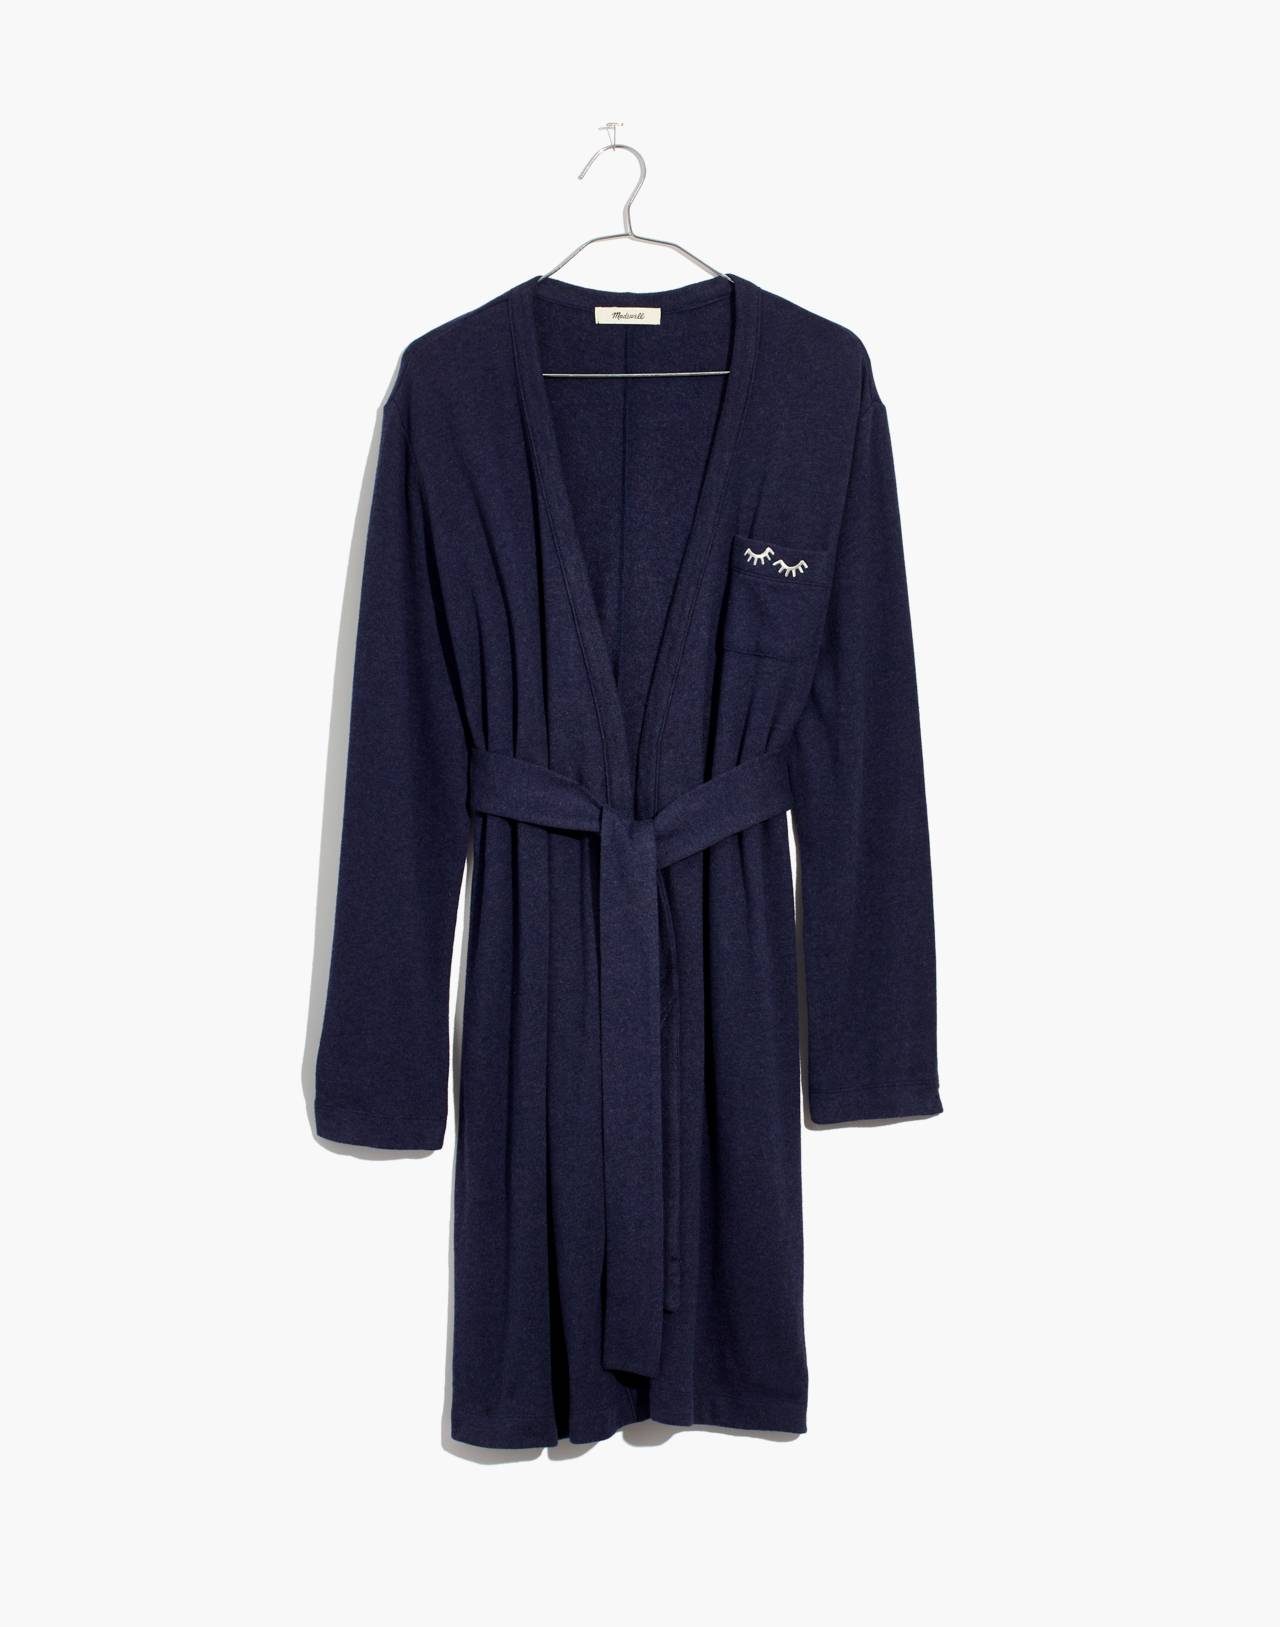 Embroidered Robe in heather admiral image 4